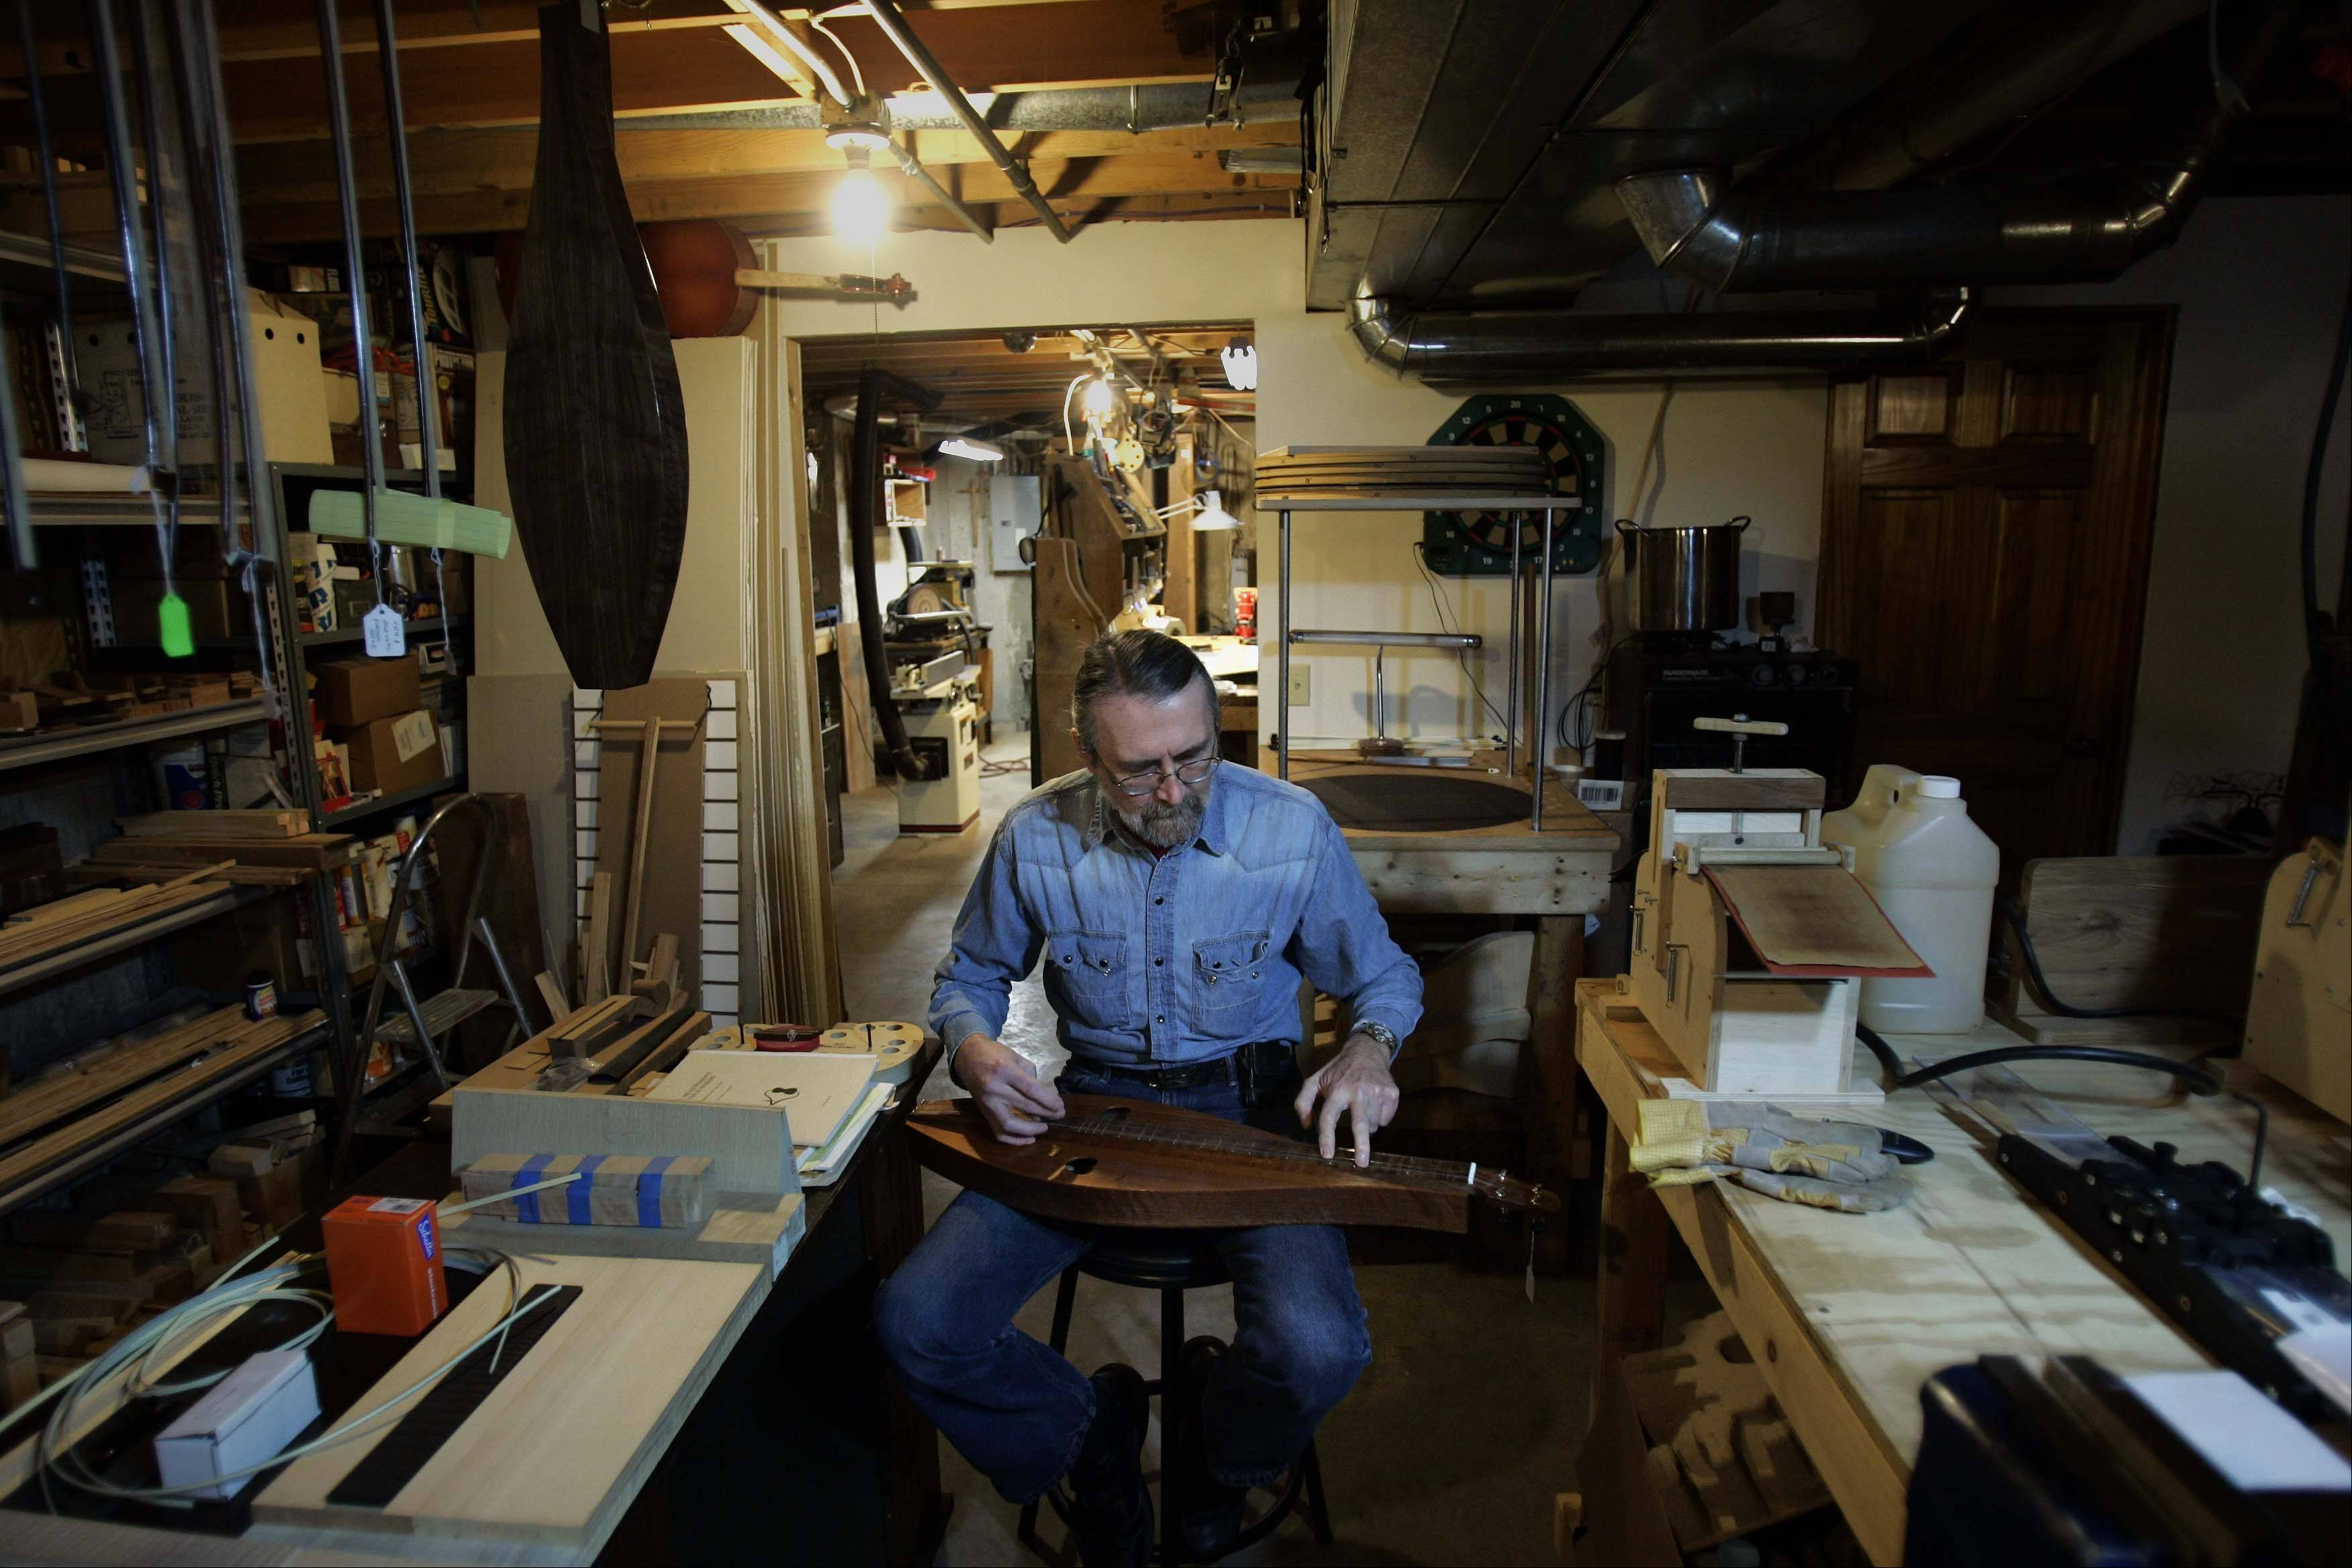 Brunkalla plays one of his handmade dulcimers in his workshop.